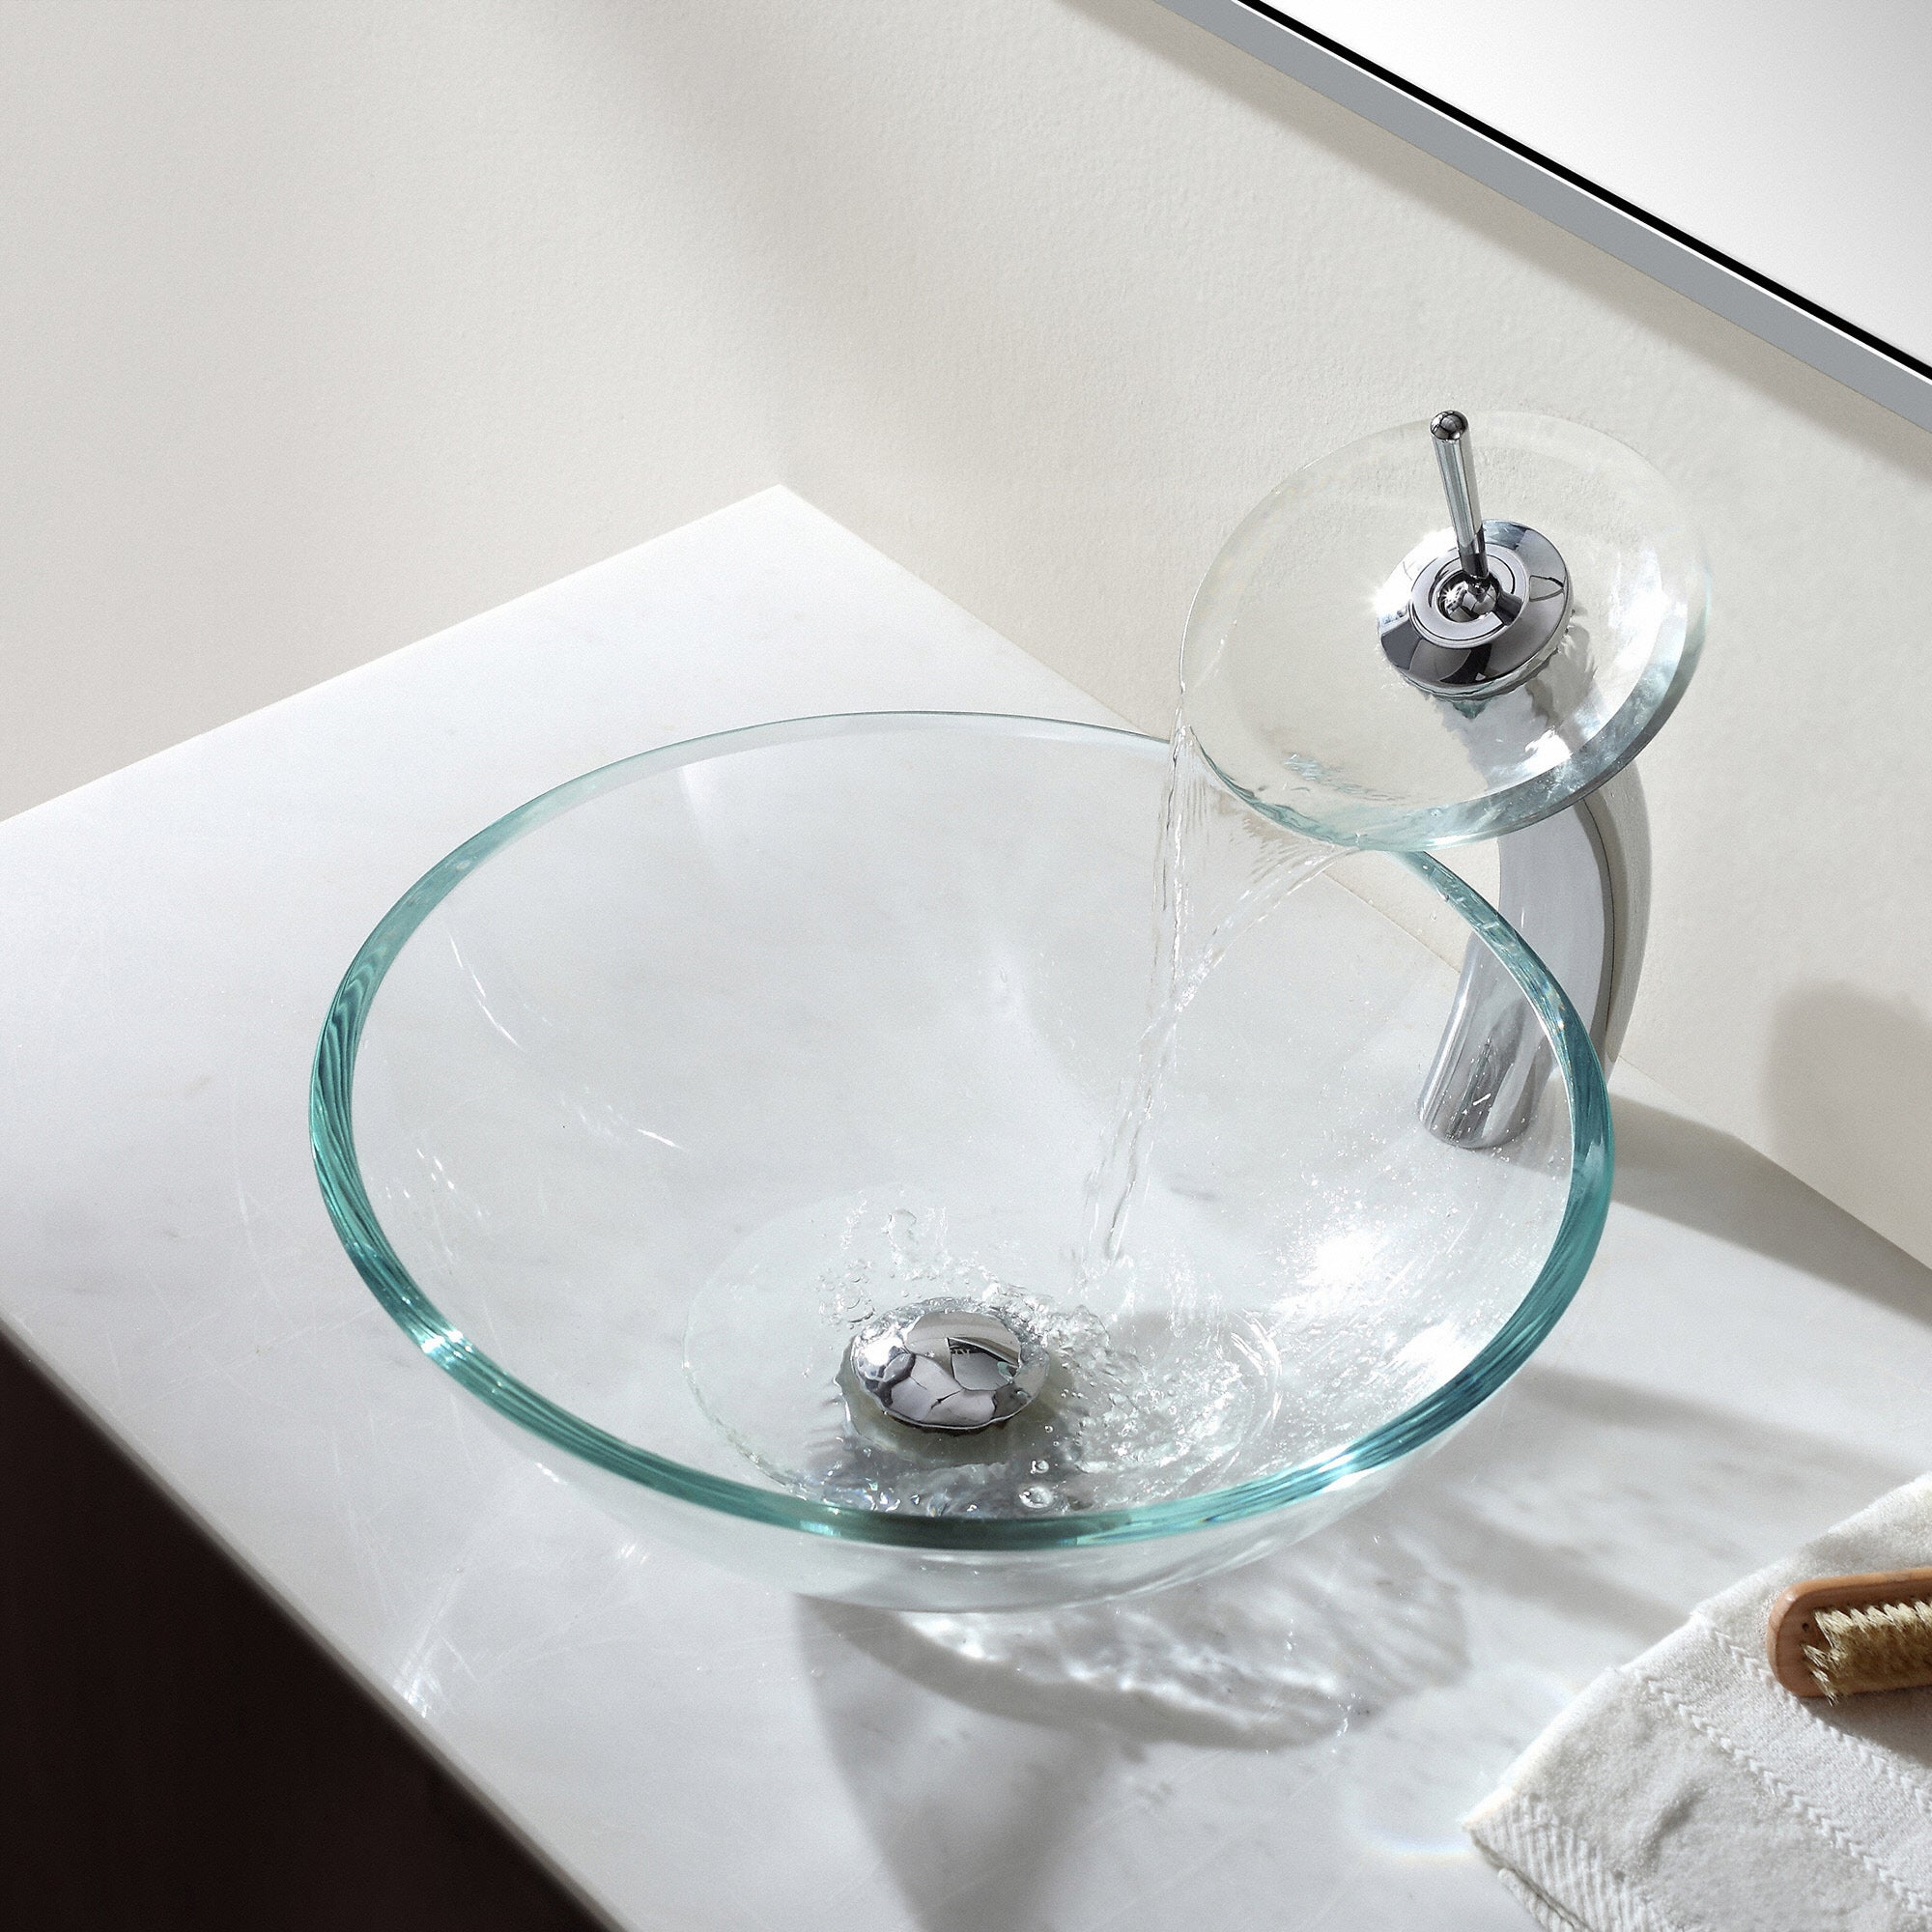 glass waterfall itm mark faucet ebay sink bathroom faucets vessel